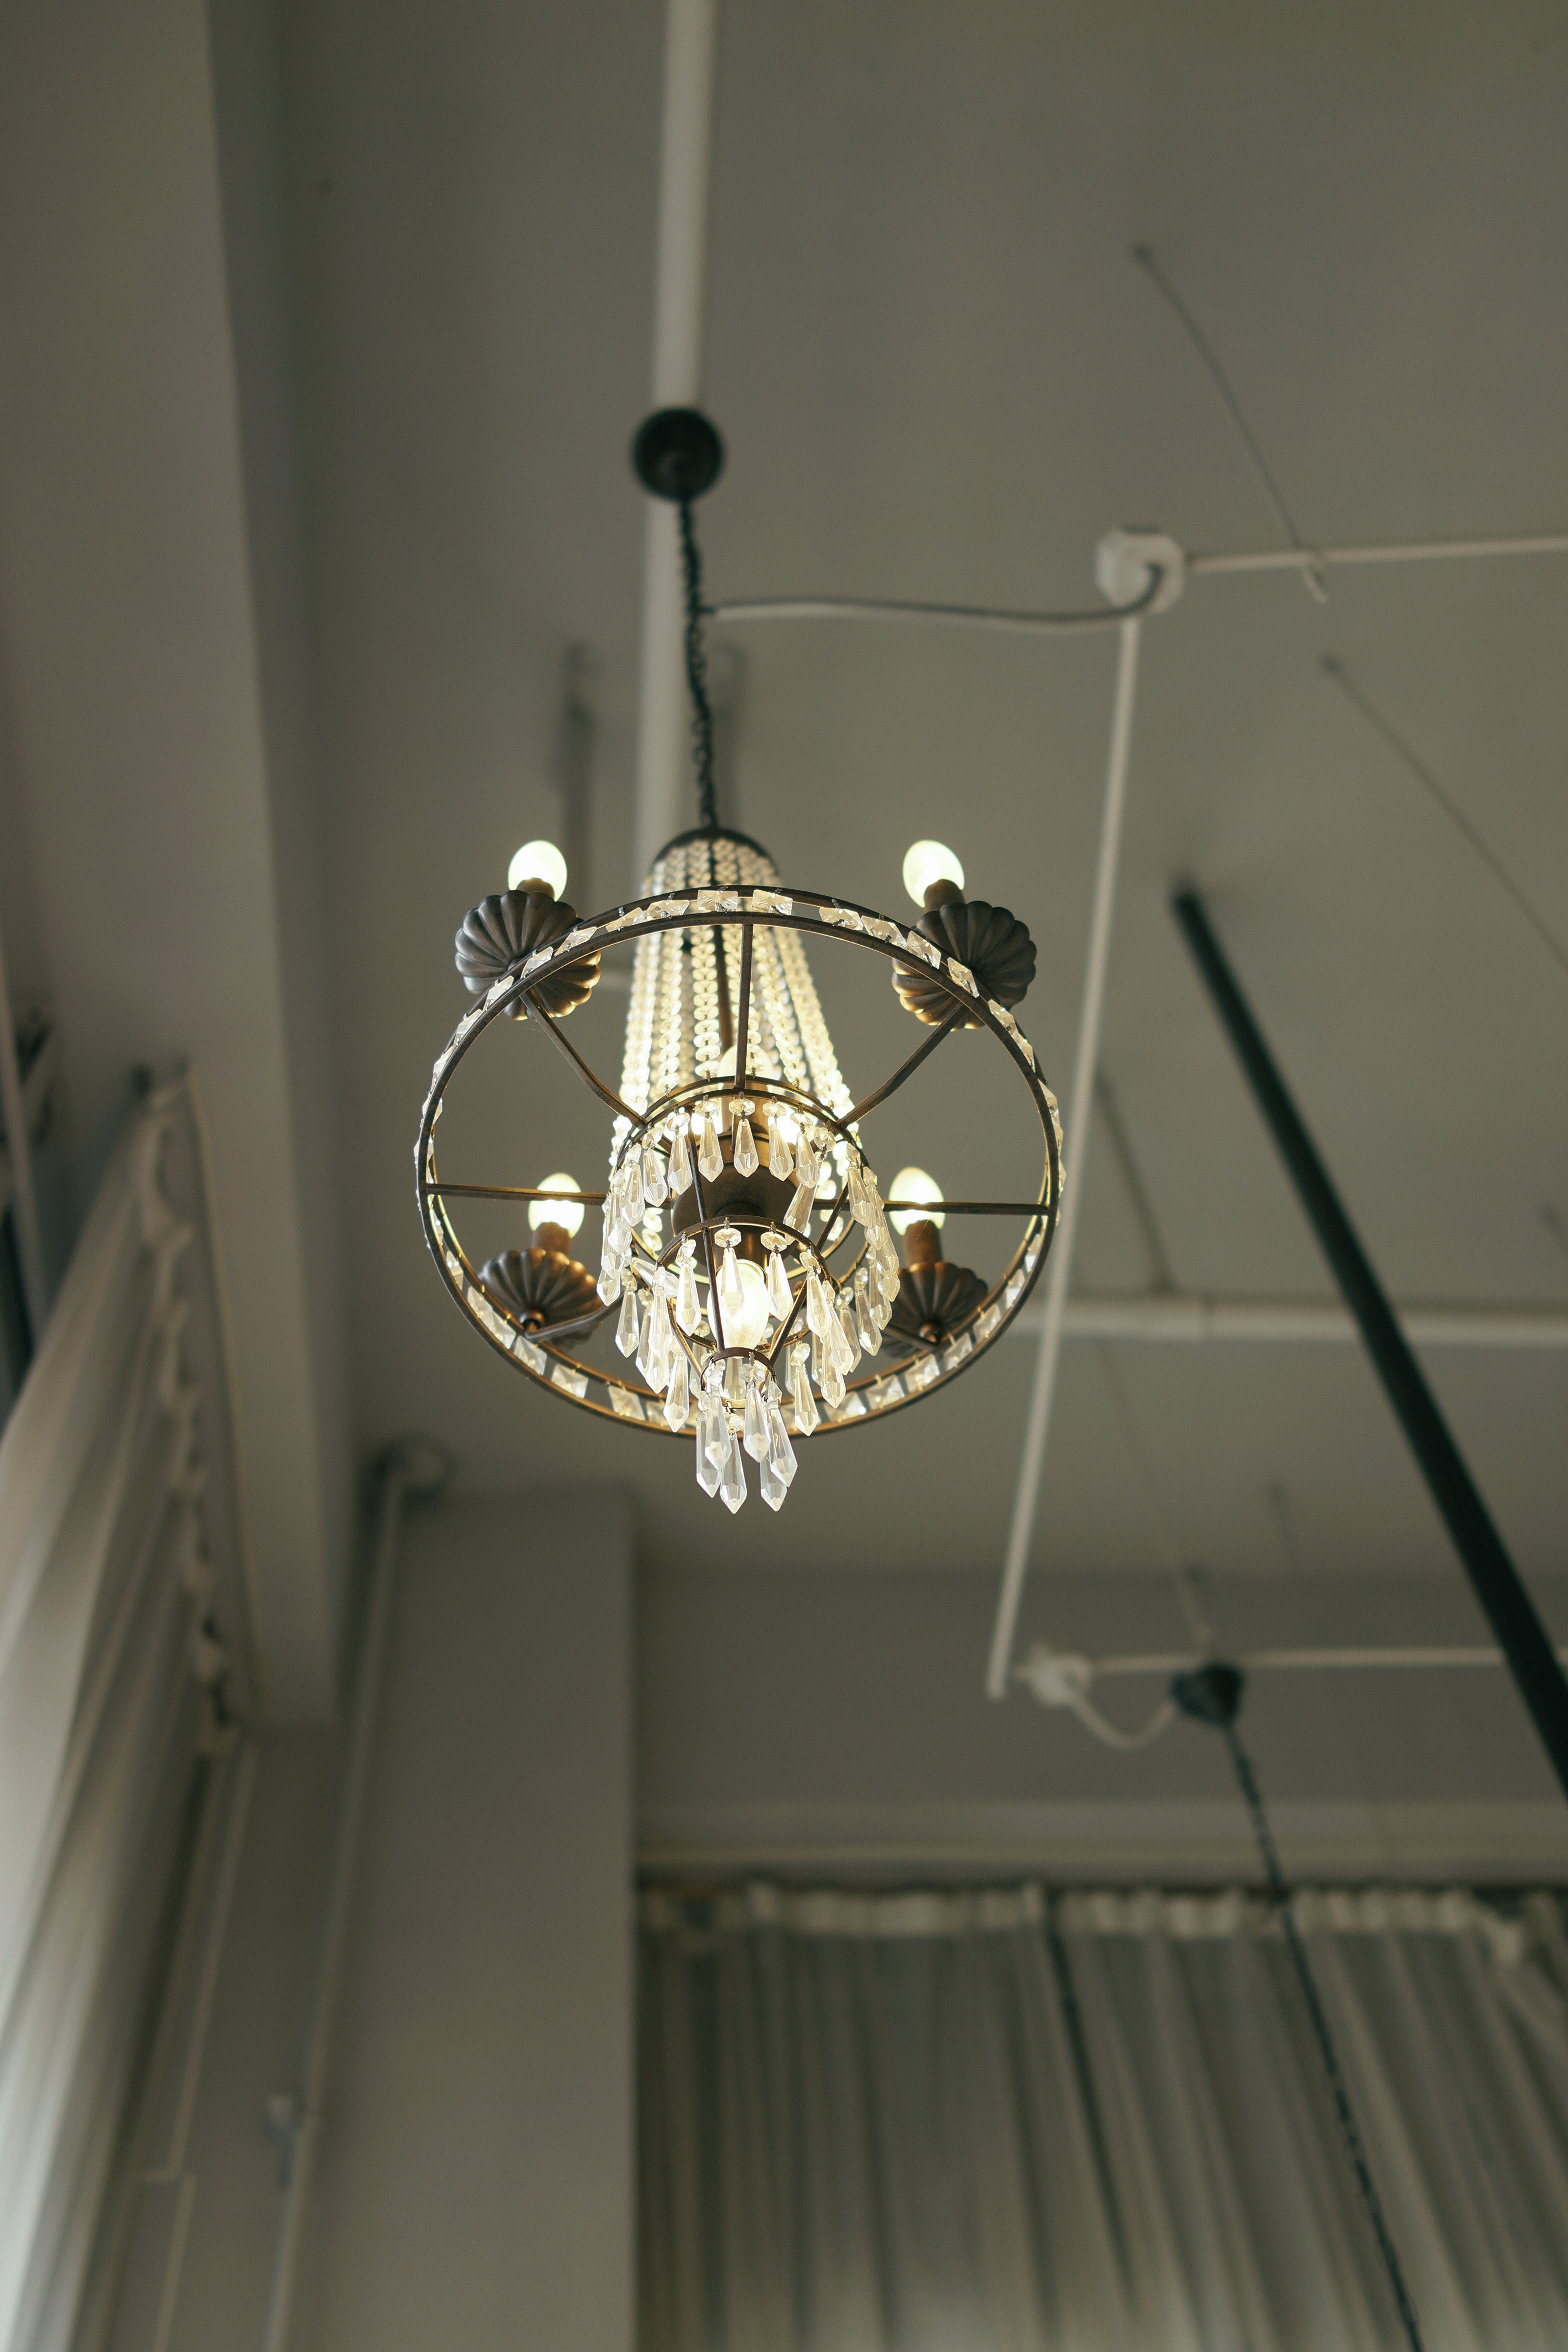 Victorian chandeliers are back in fashion.